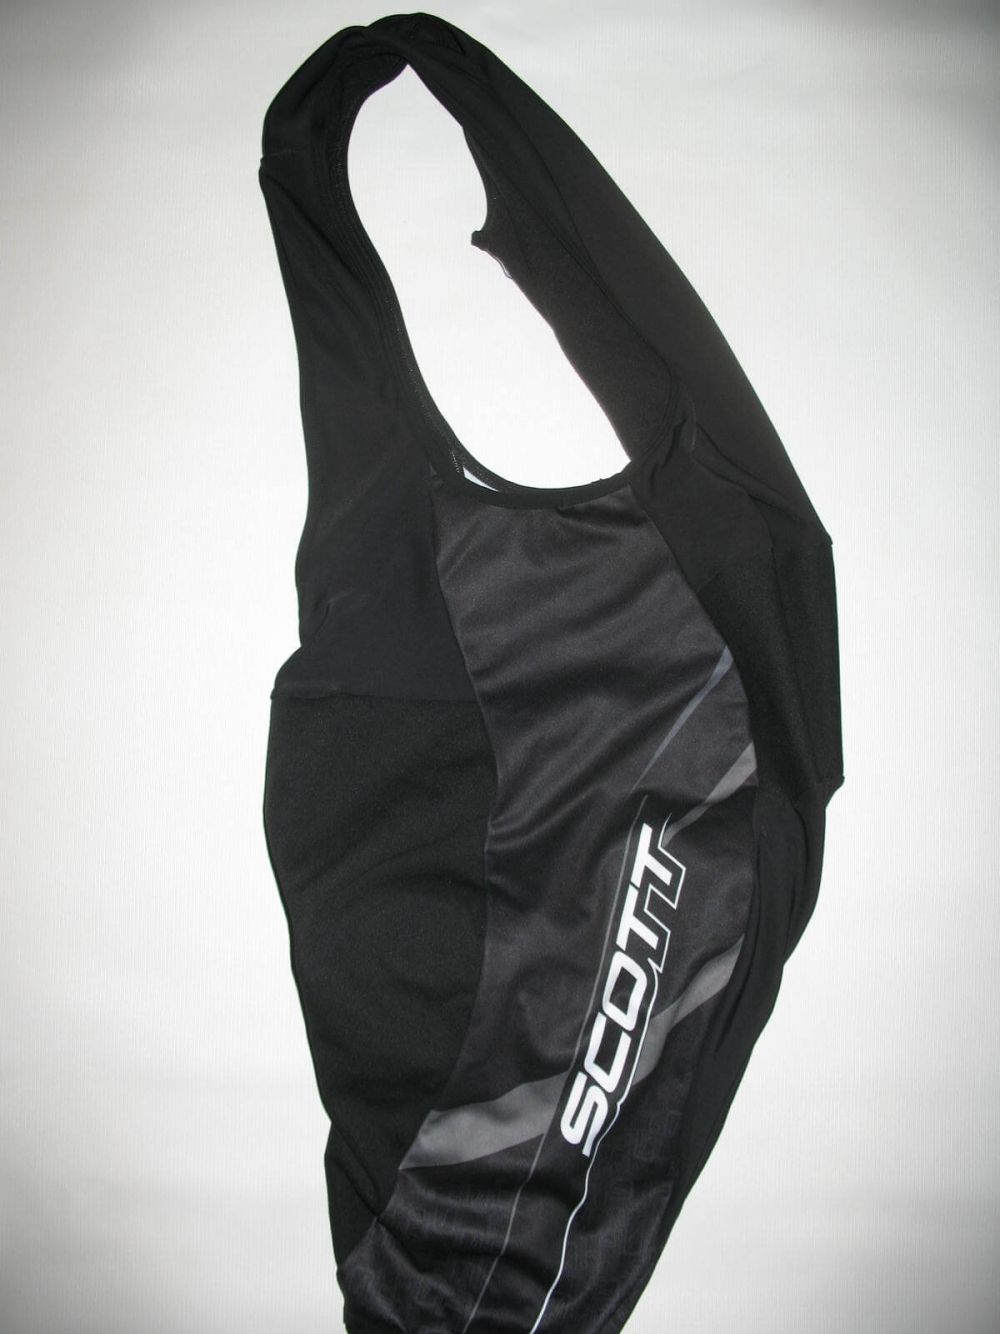 Штаны SCOTT cycling bib pants (размер L) - 5